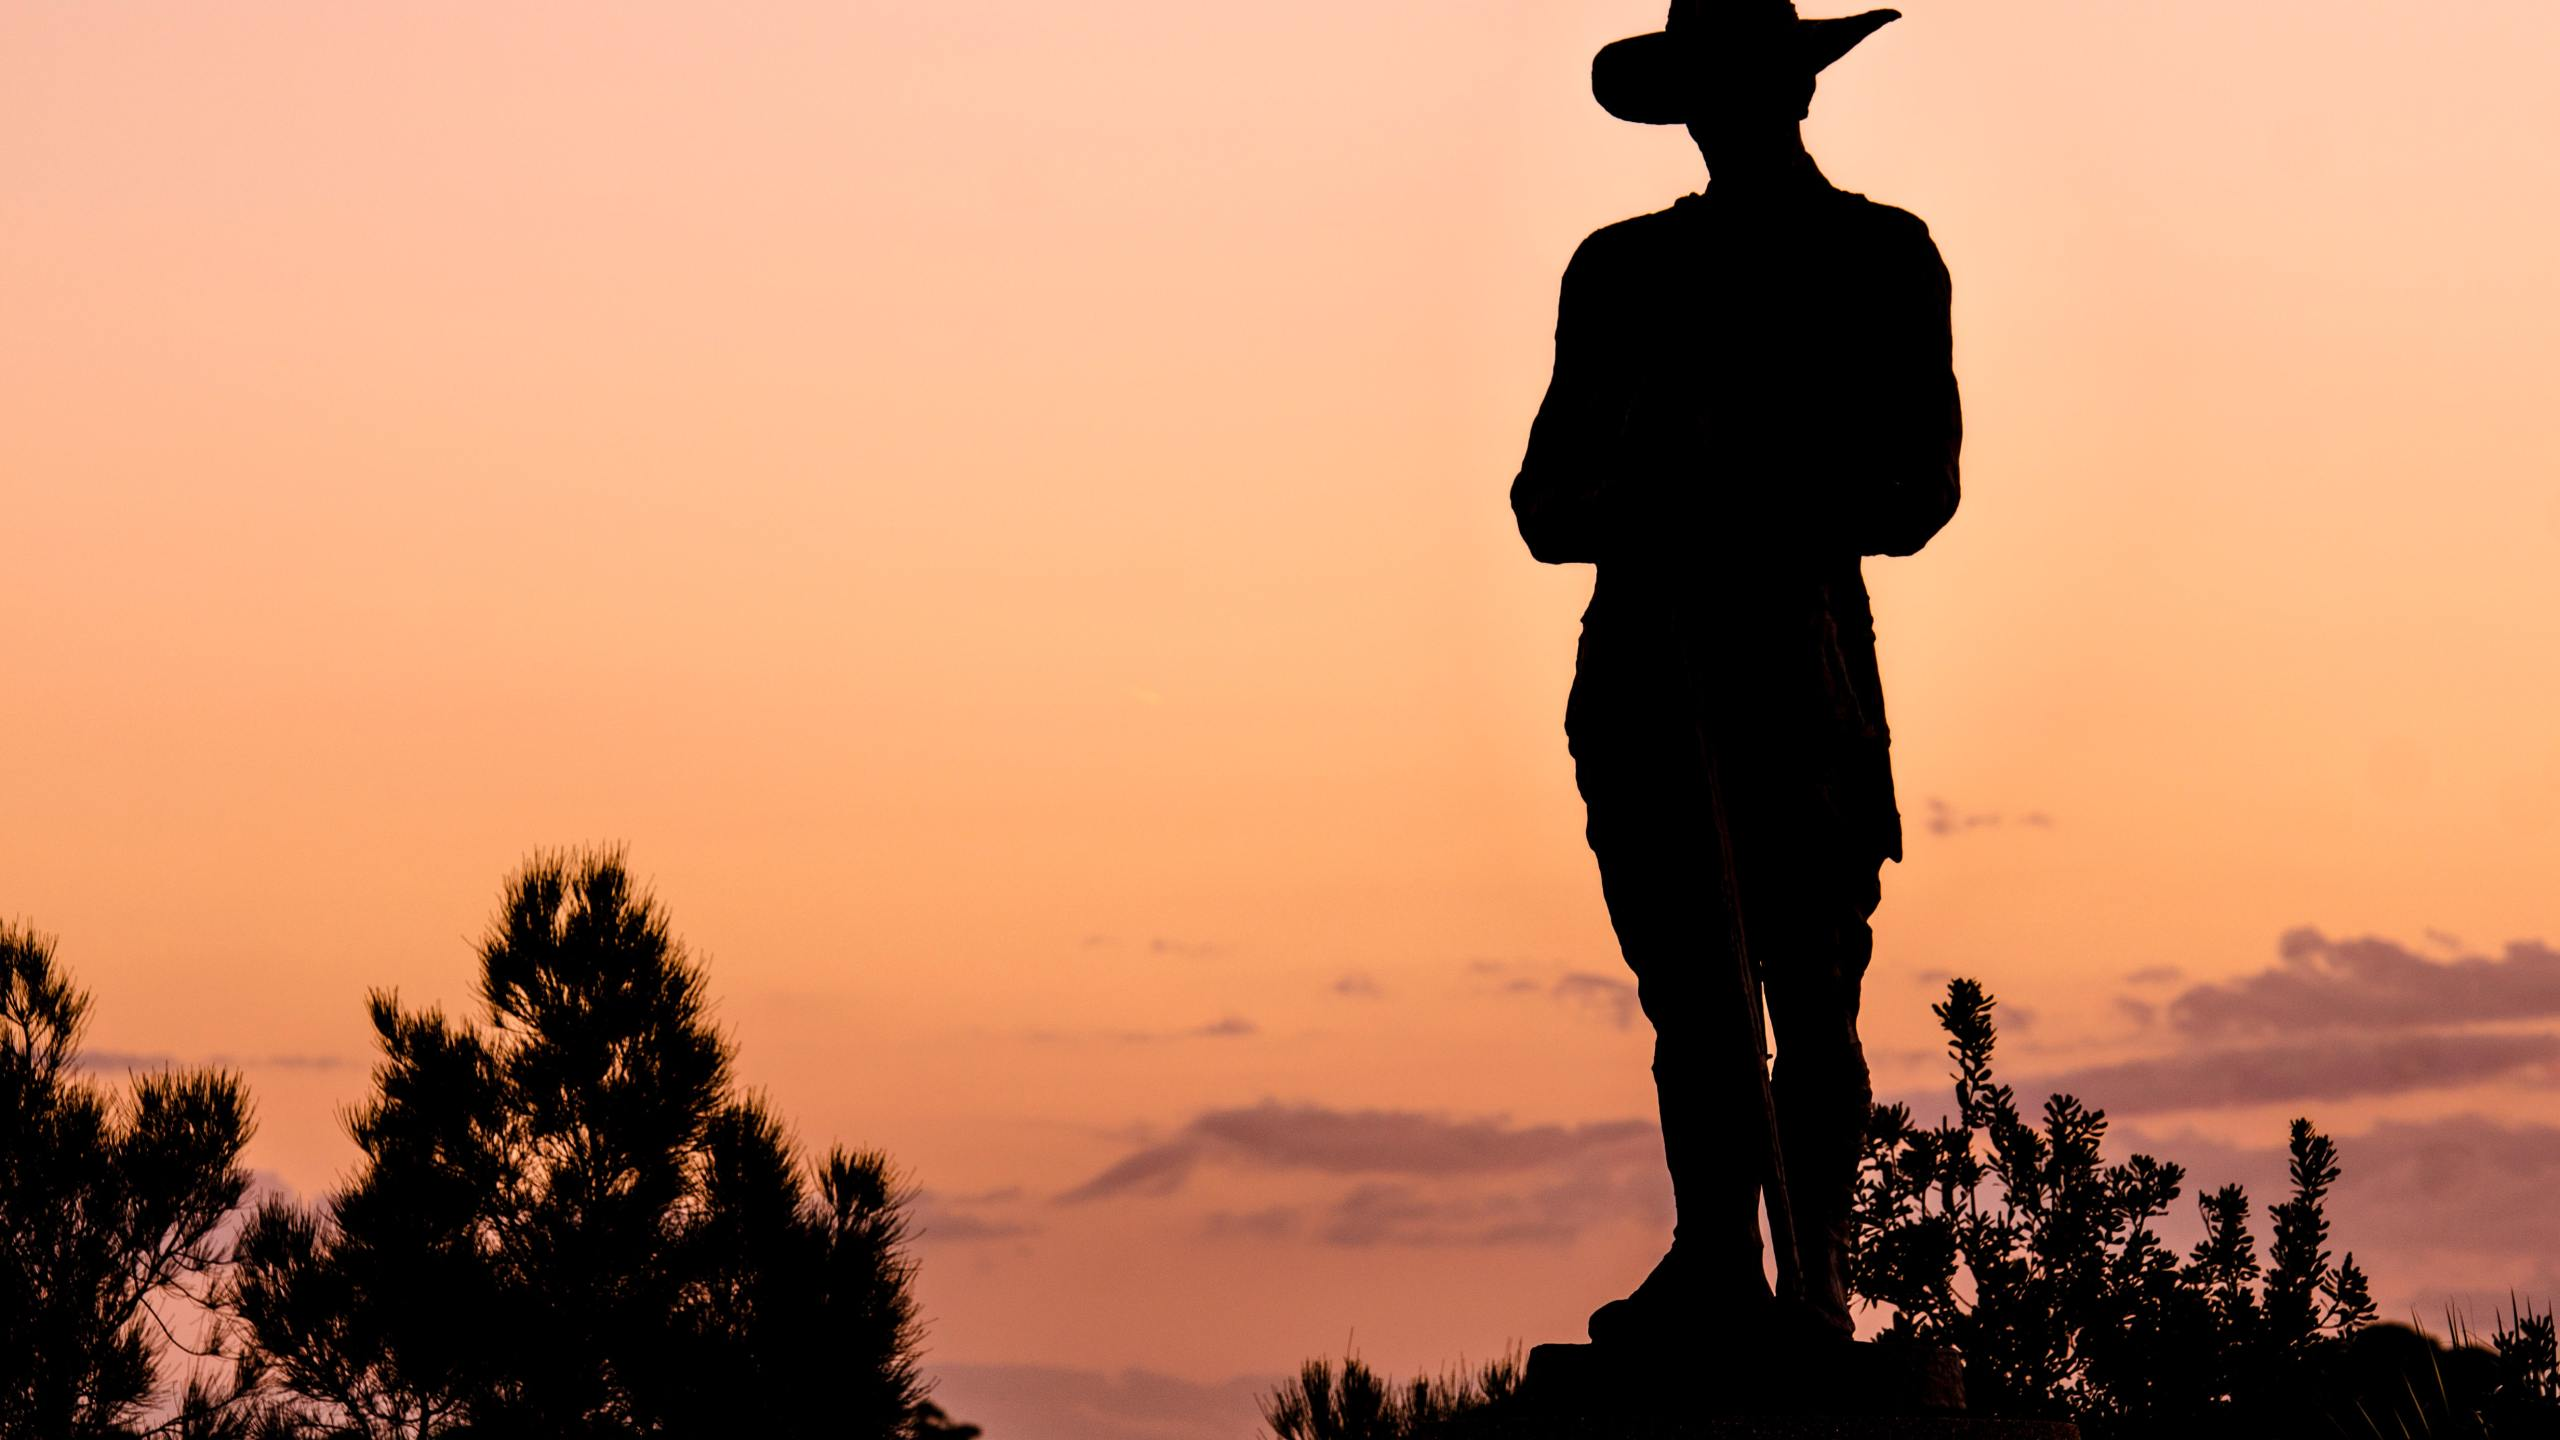 sunset silhouette forest ranger